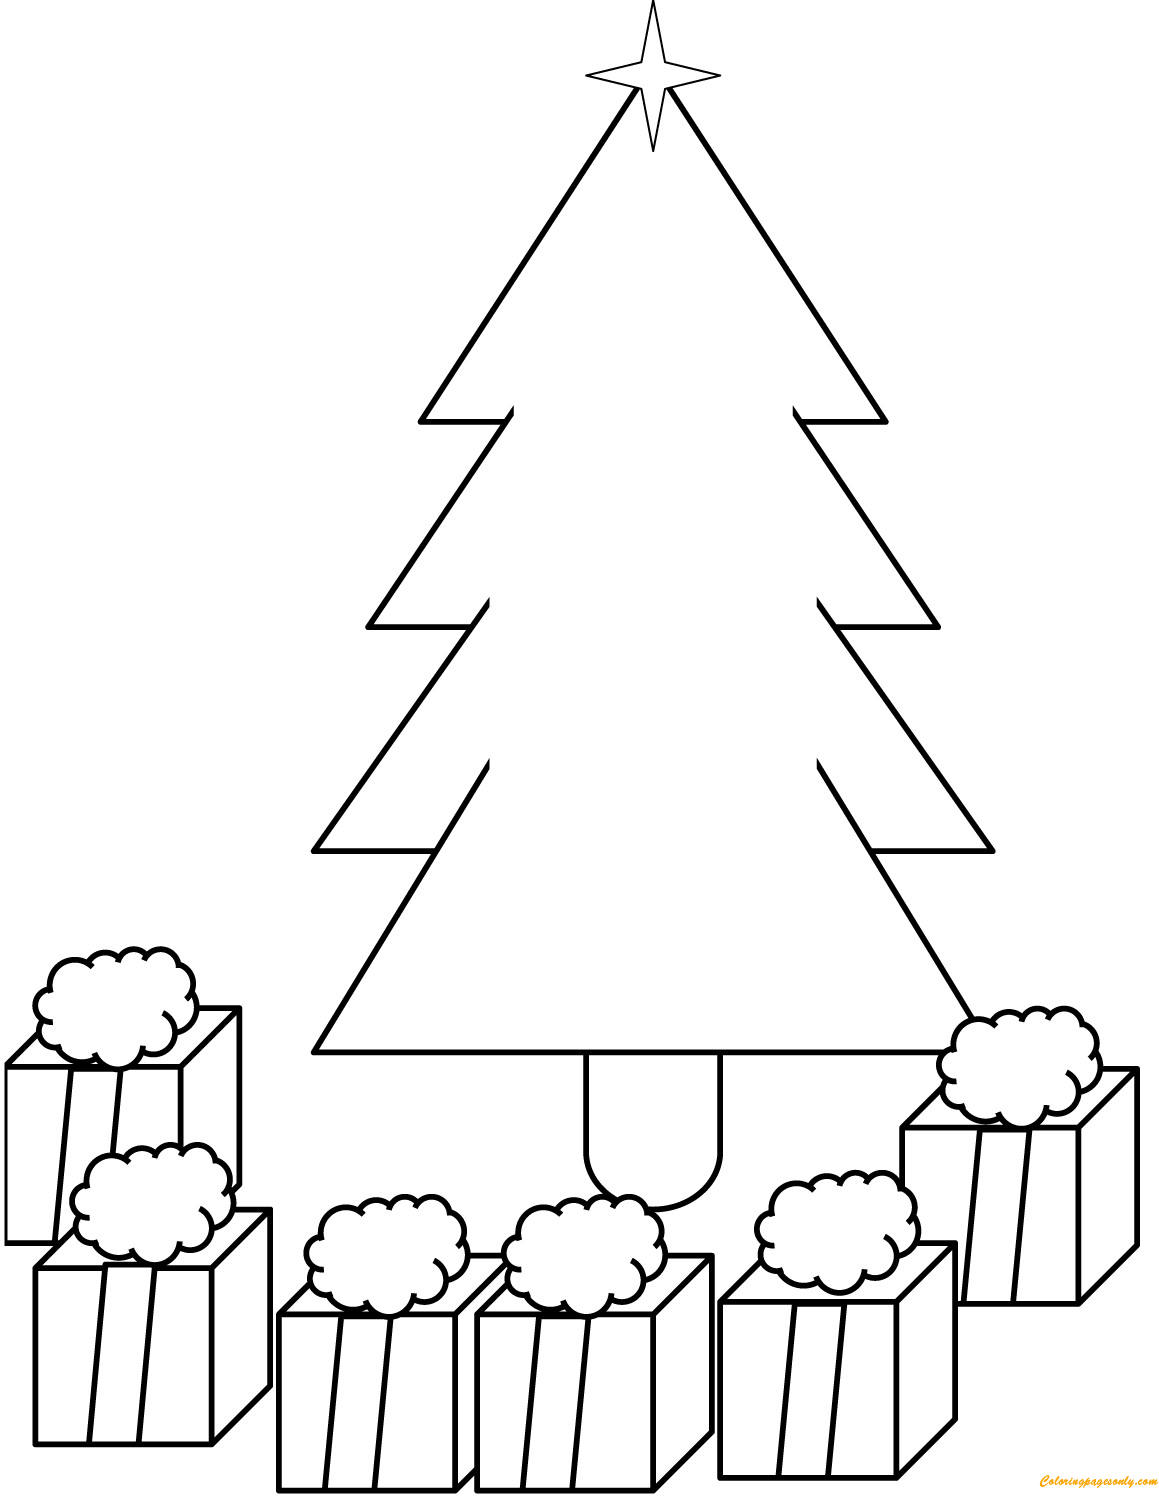 Presents Under Christmas Tree Coloring Page